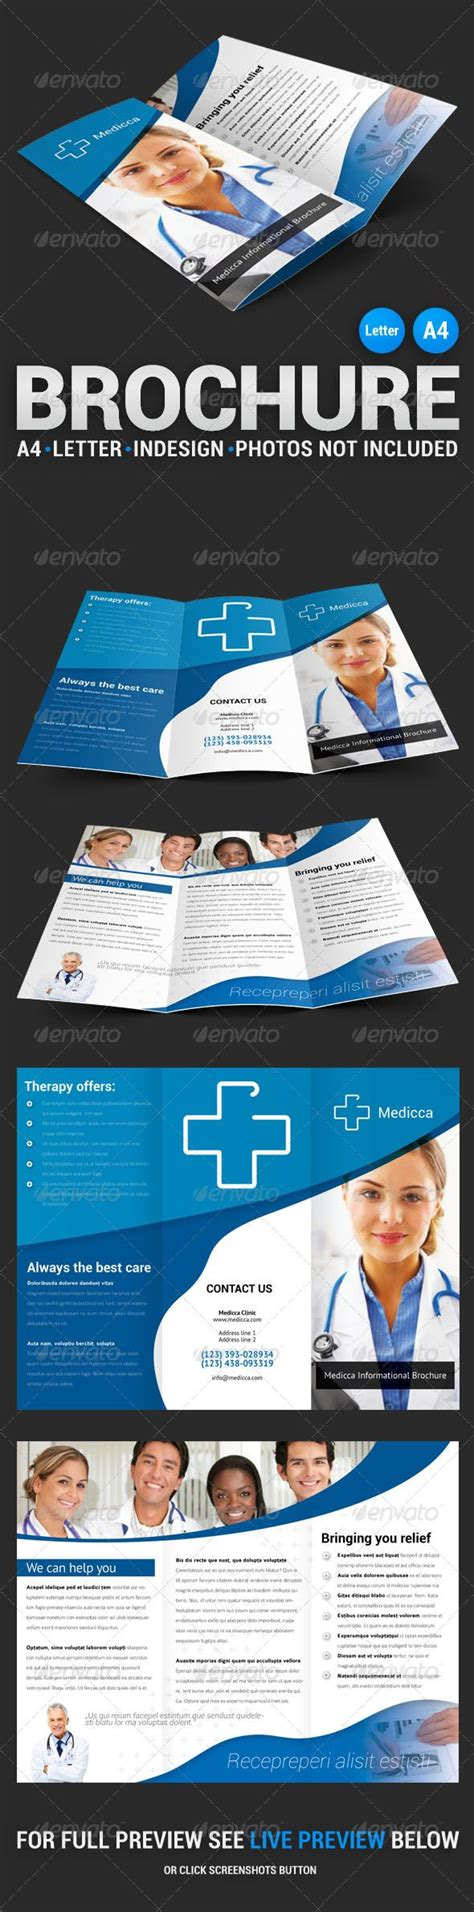 j card template indesign 31 best images about brochure ideas on